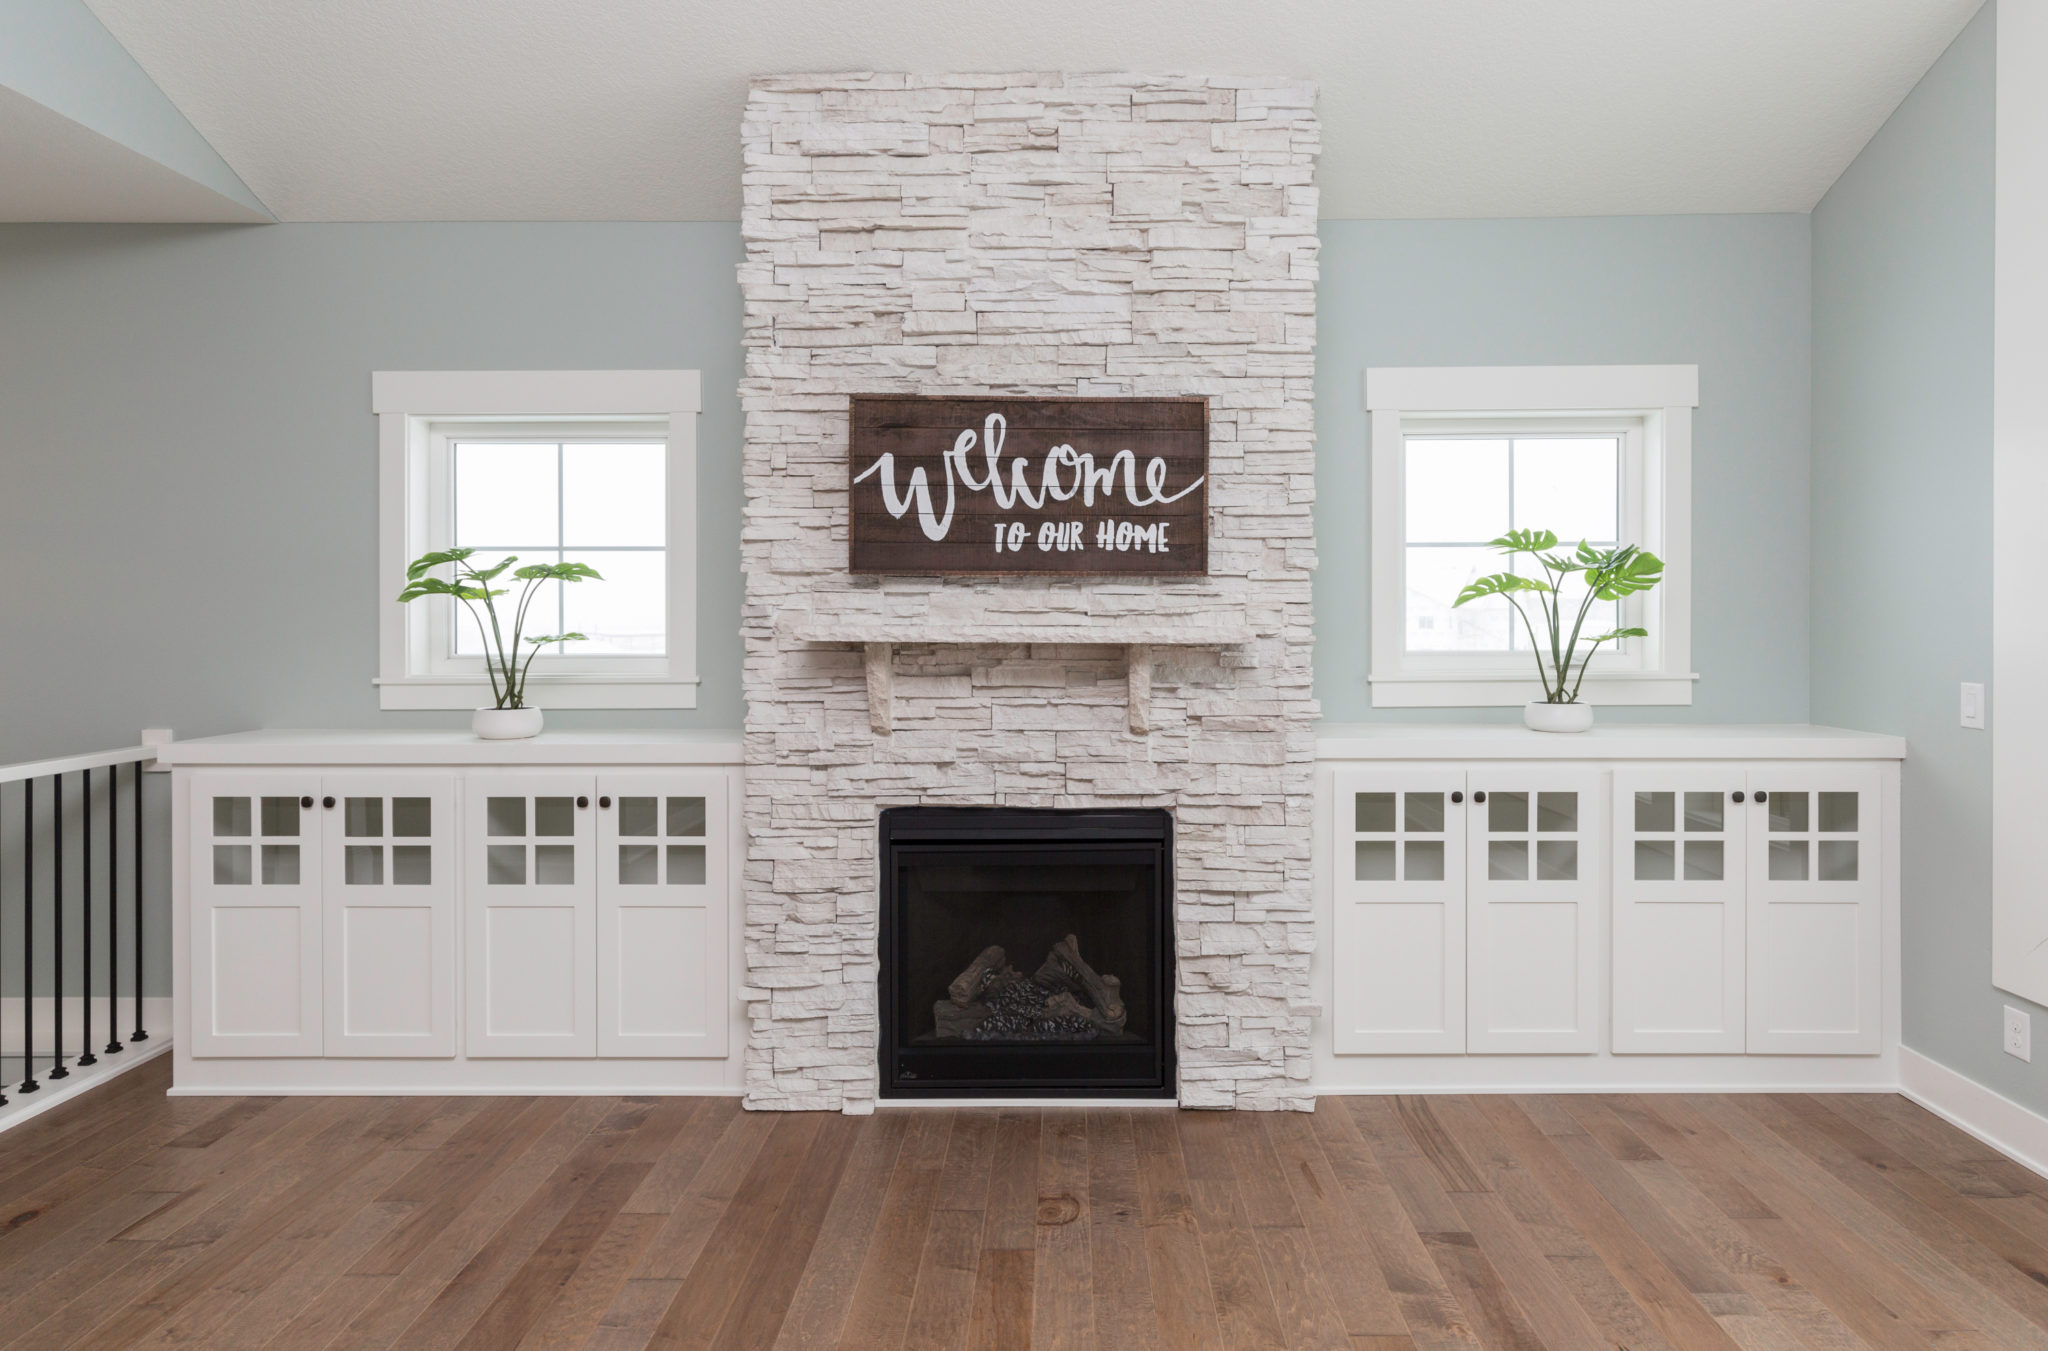 Custom fireplace, Ankeny Iowa Home Builder, Custom Home Builder in Iowa